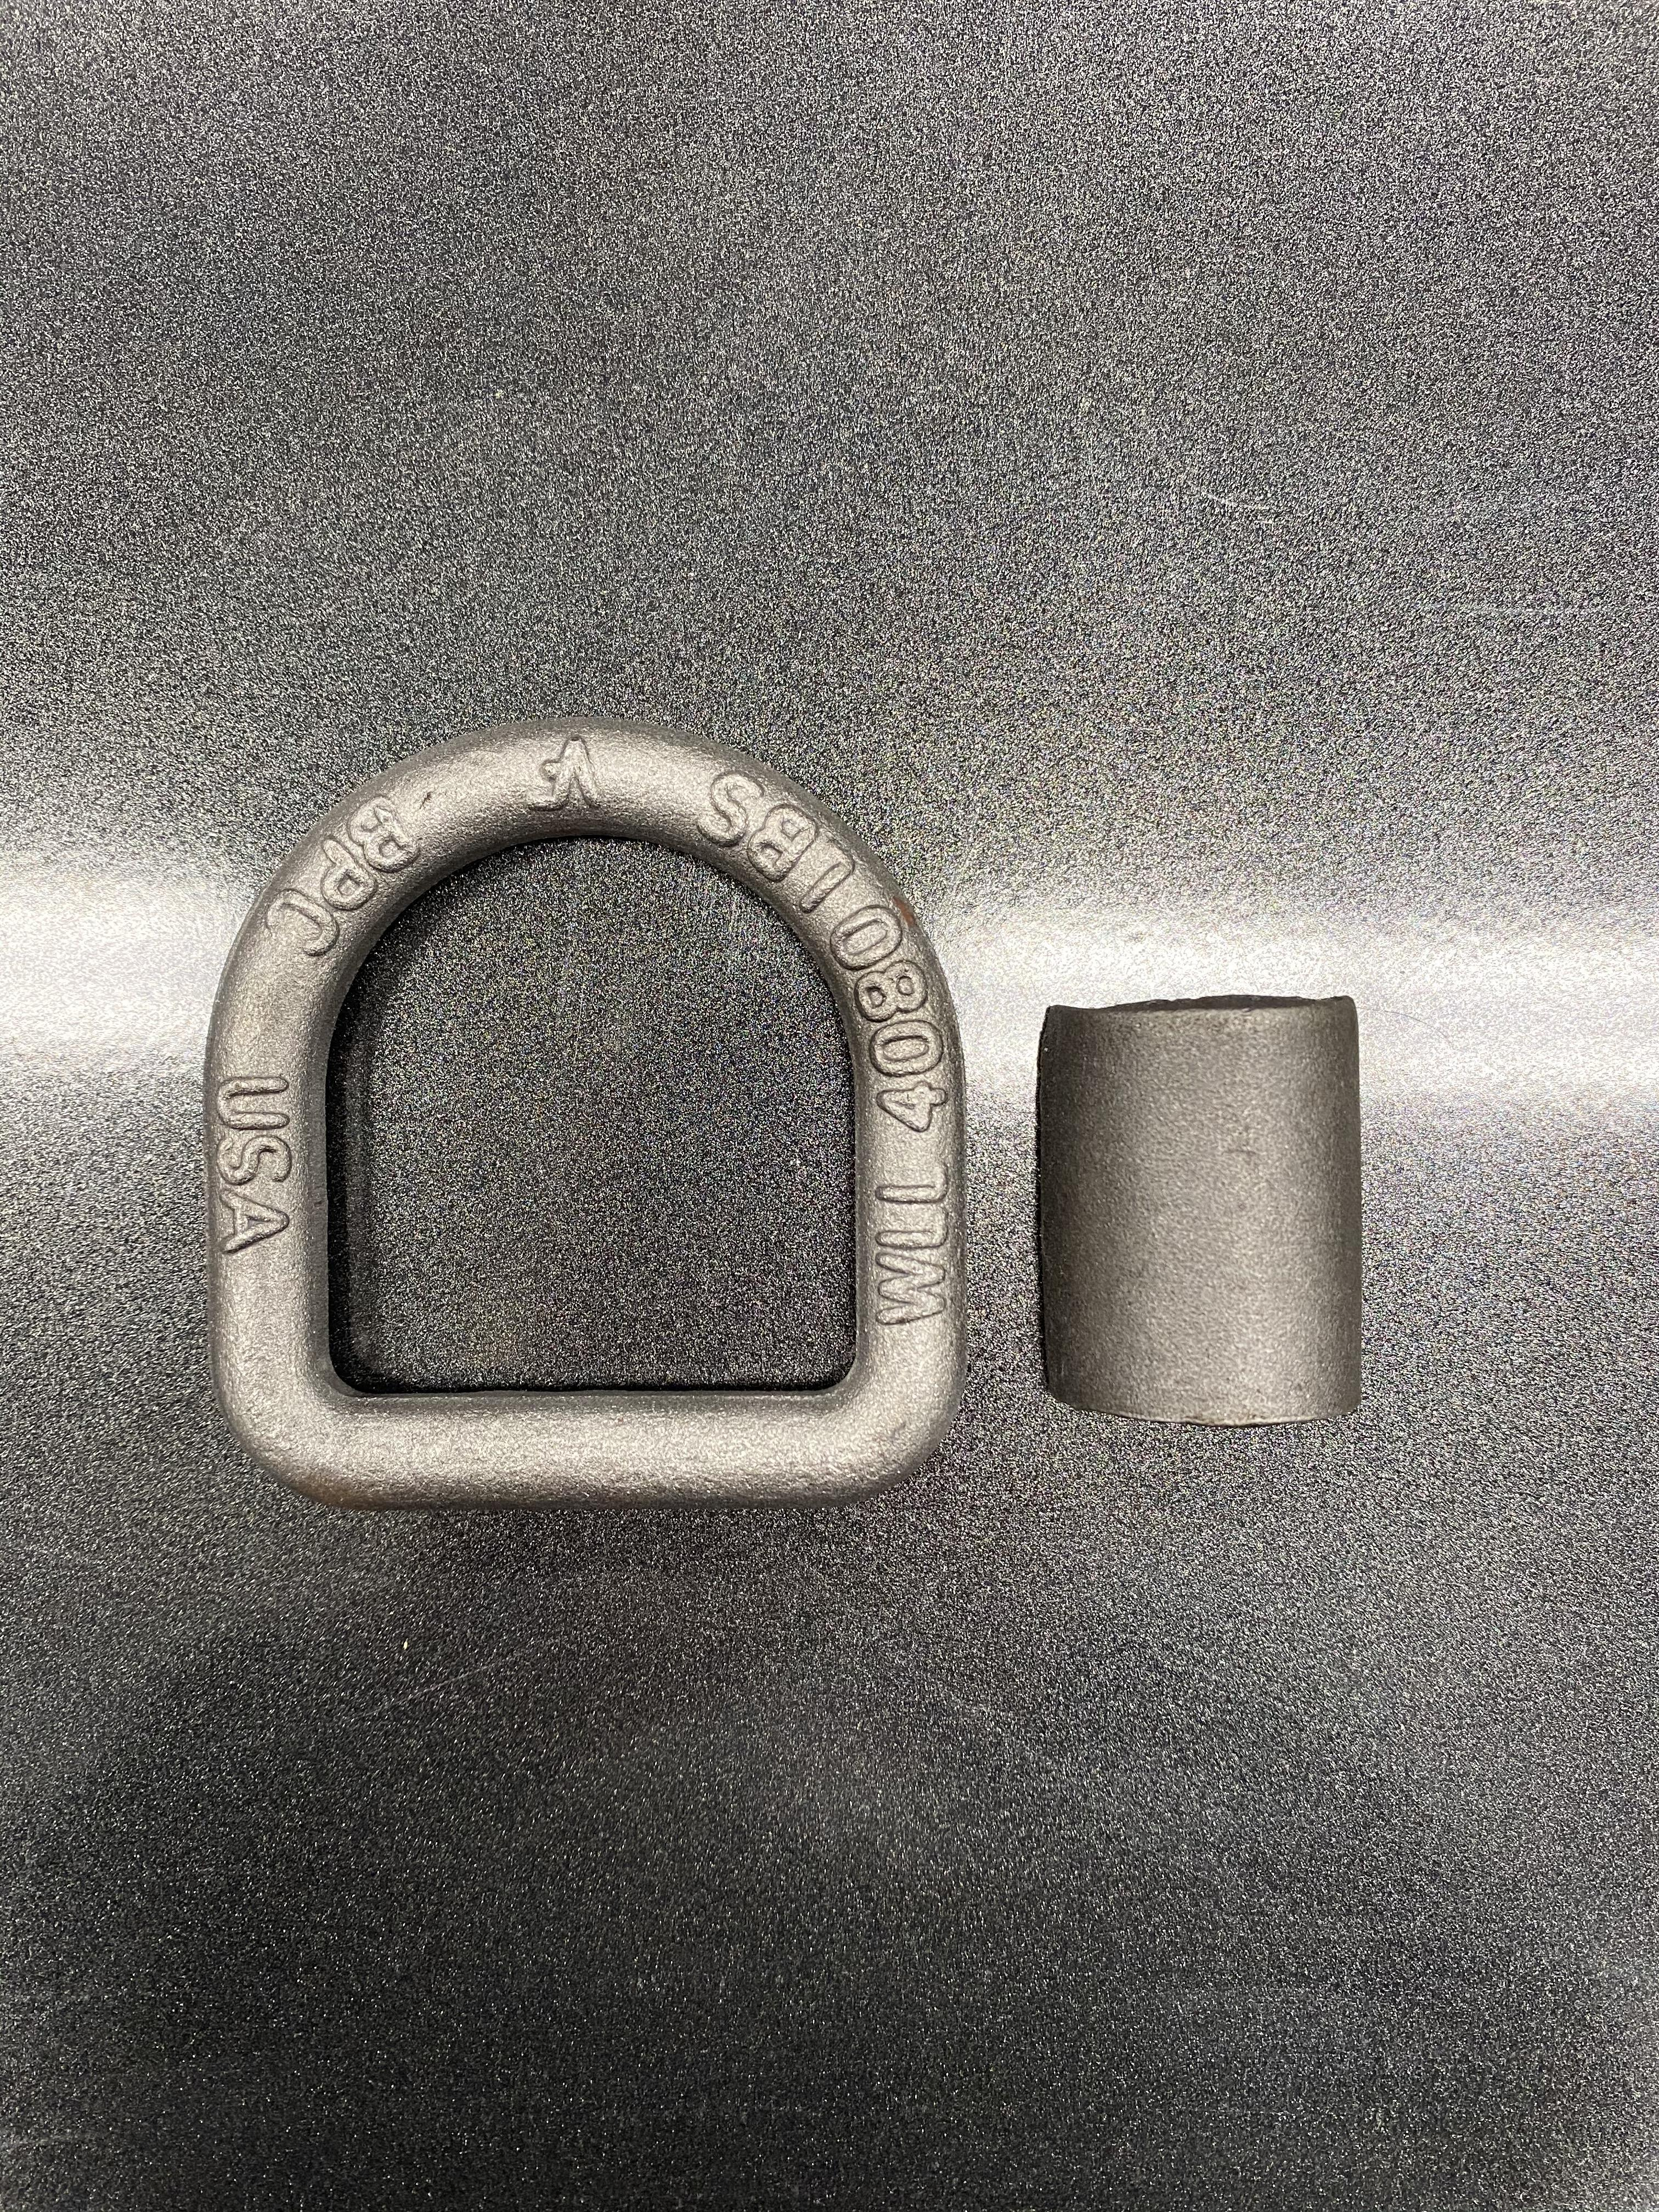 Small Weld-on D-Ring 4080LBS